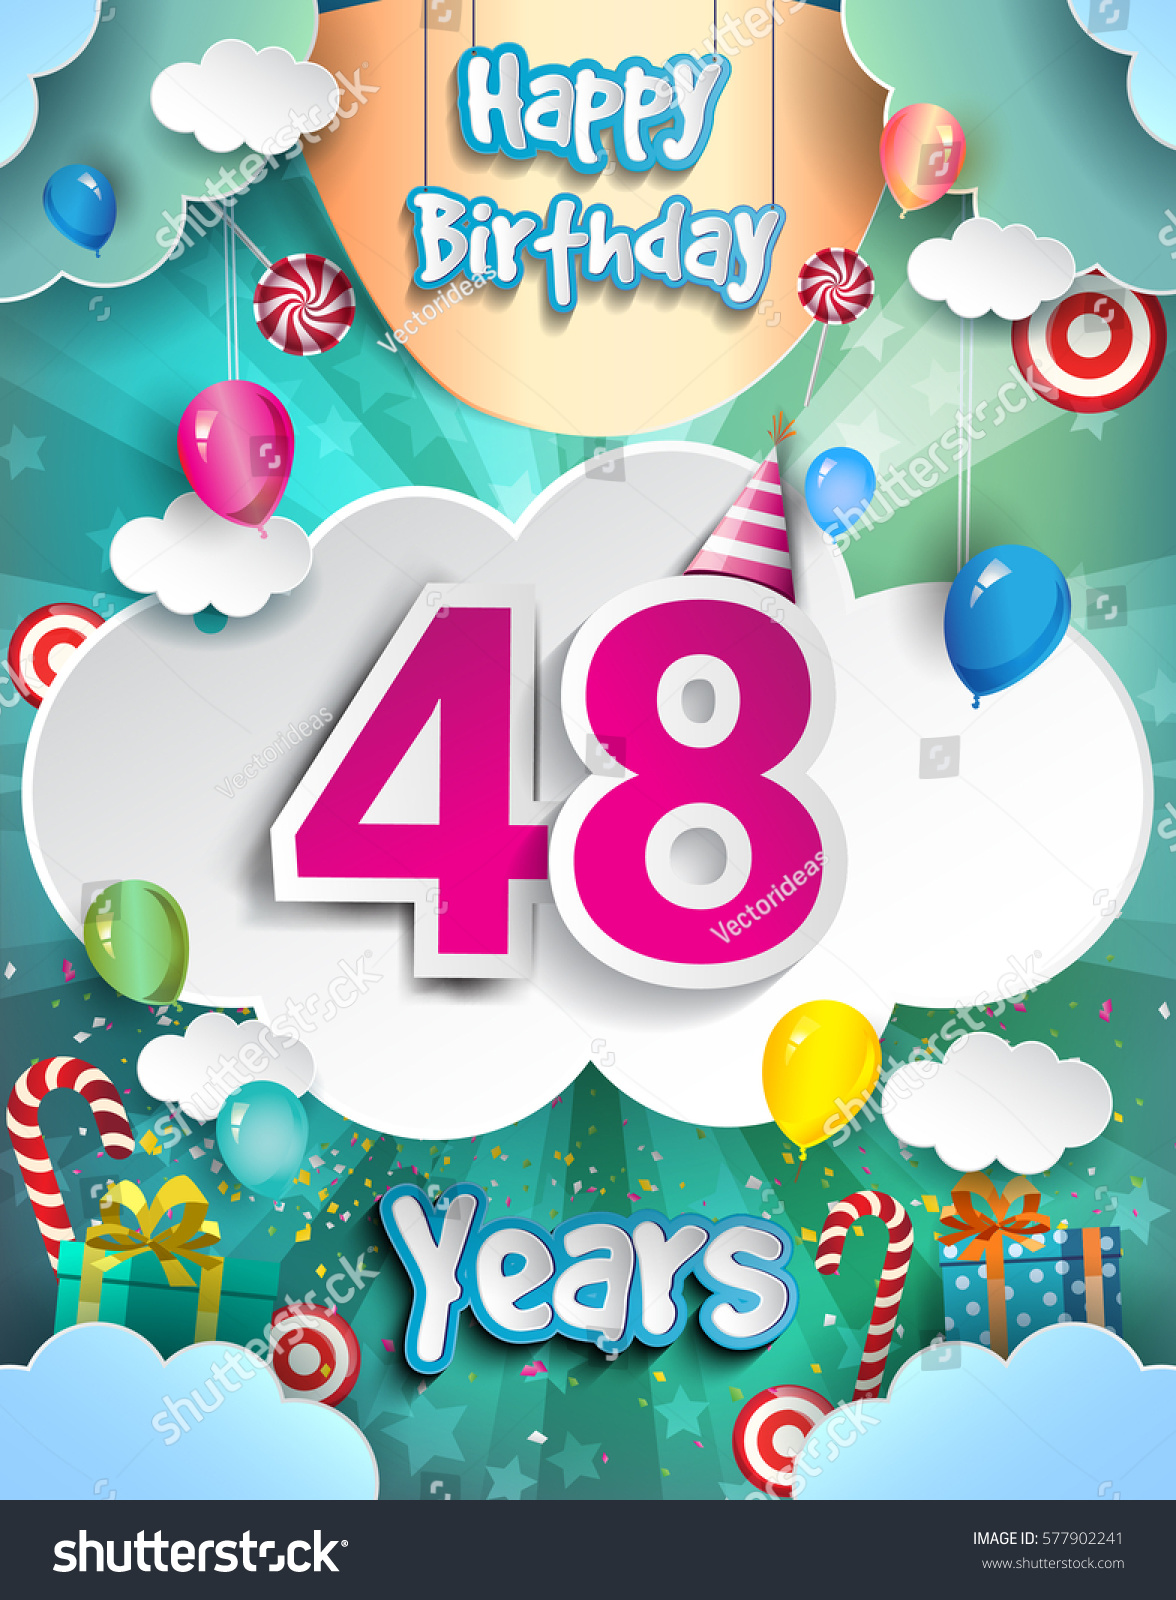 48 Years Birthday Design Greeting Cards Stock Vector Royalty Free